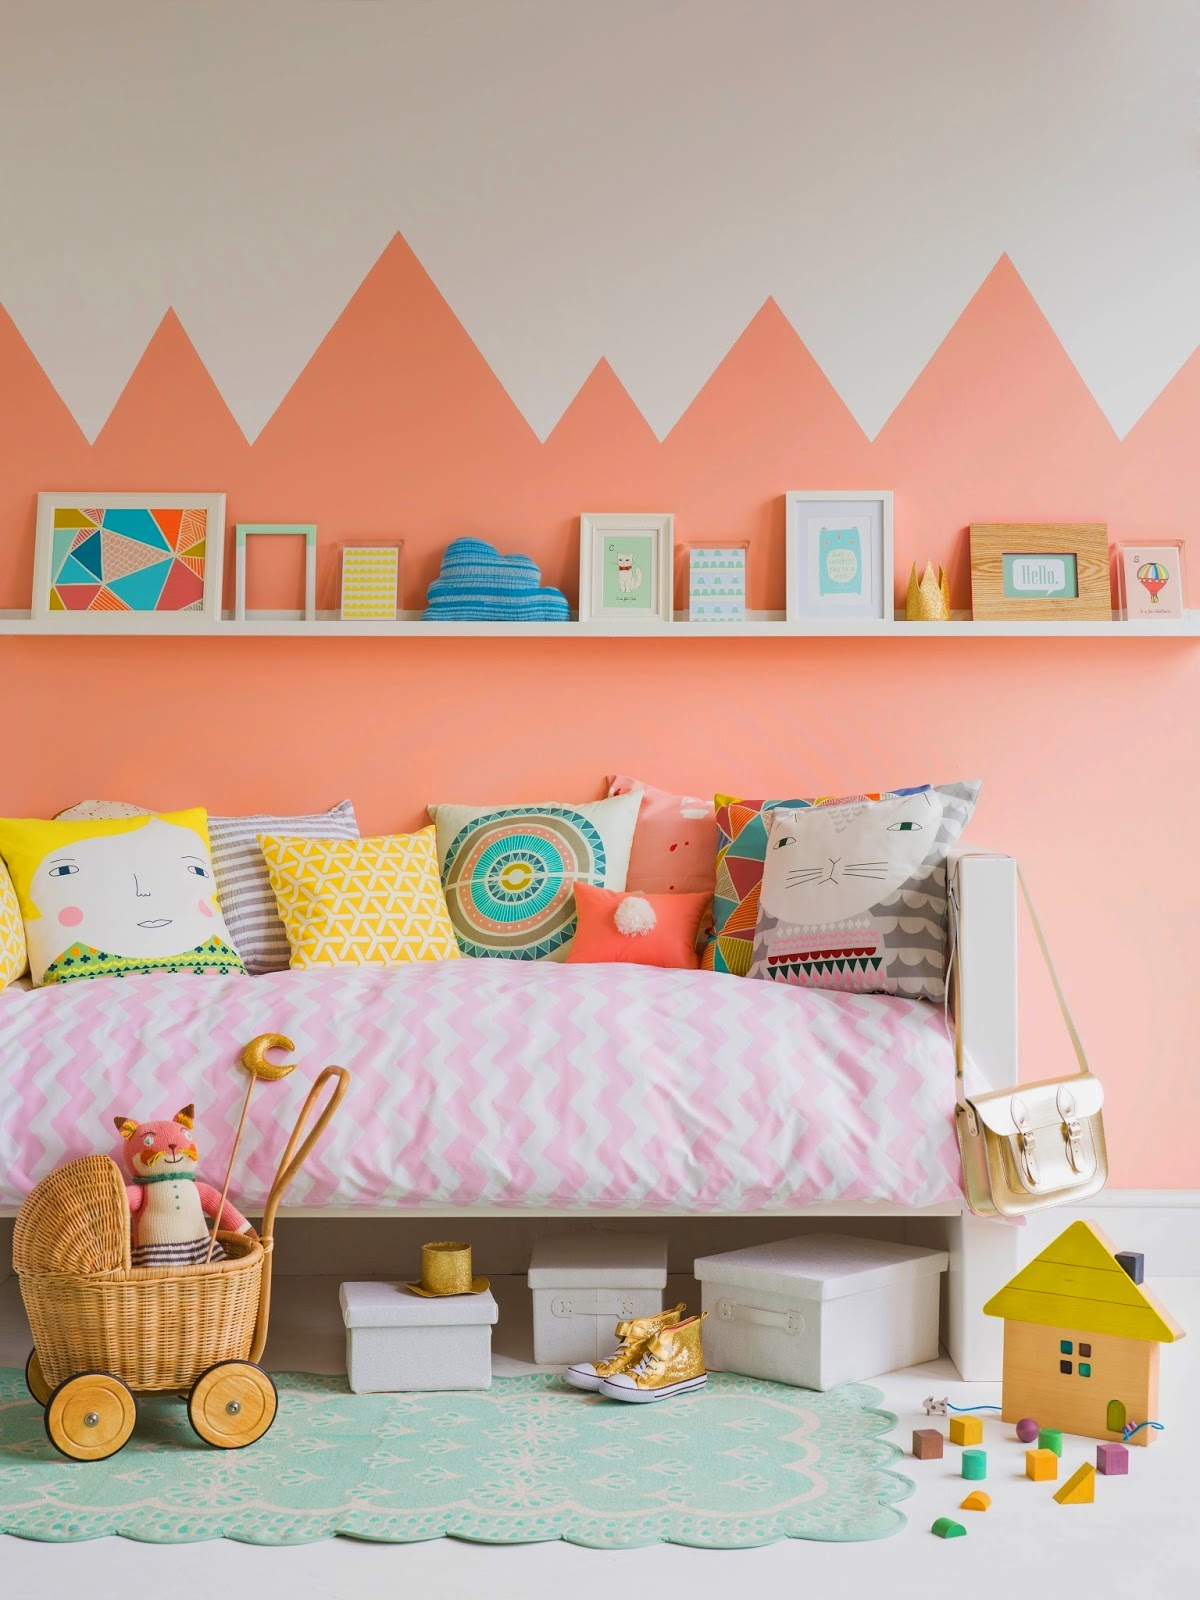 decora o de quarto infantil inspira o de blogs gringos jeito de casa blog de decora o. Black Bedroom Furniture Sets. Home Design Ideas